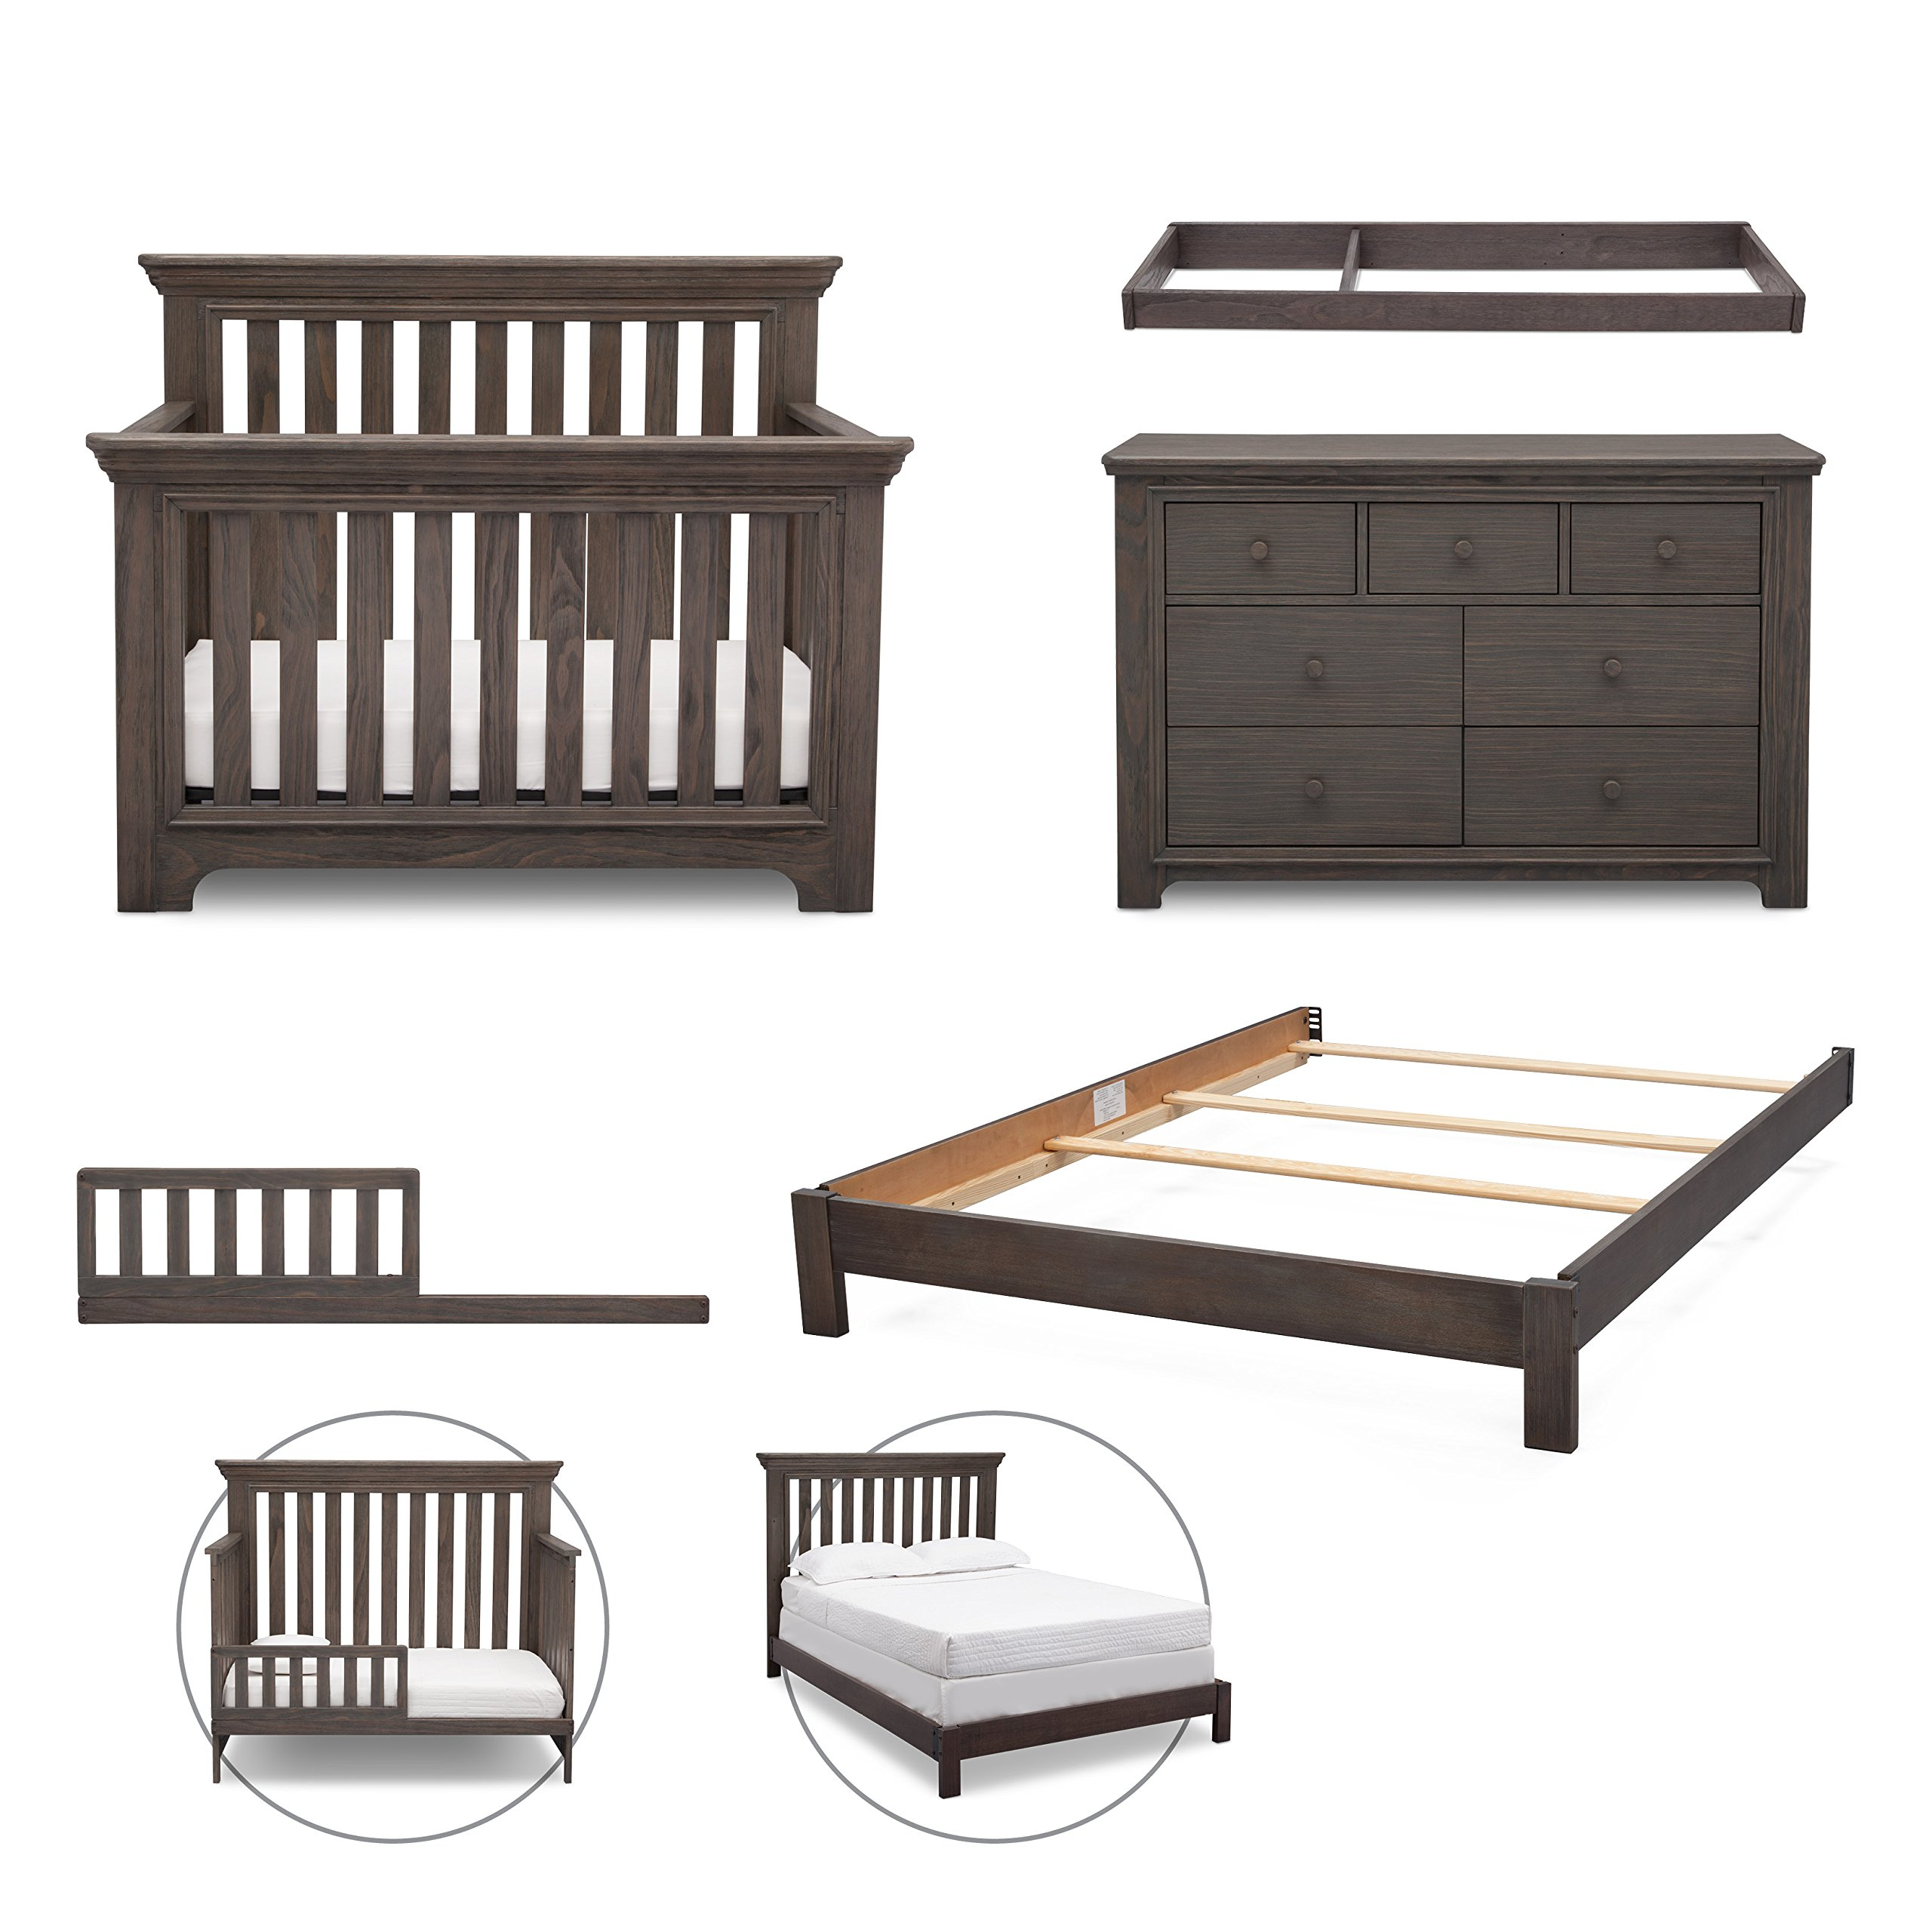 Simmons Kids Langley 5-Piece Nursery Furniture Set (Convertible Crib, Dresser, Changing Top, Toddler Guardrail, Full Size Conversion), Rustic Grey